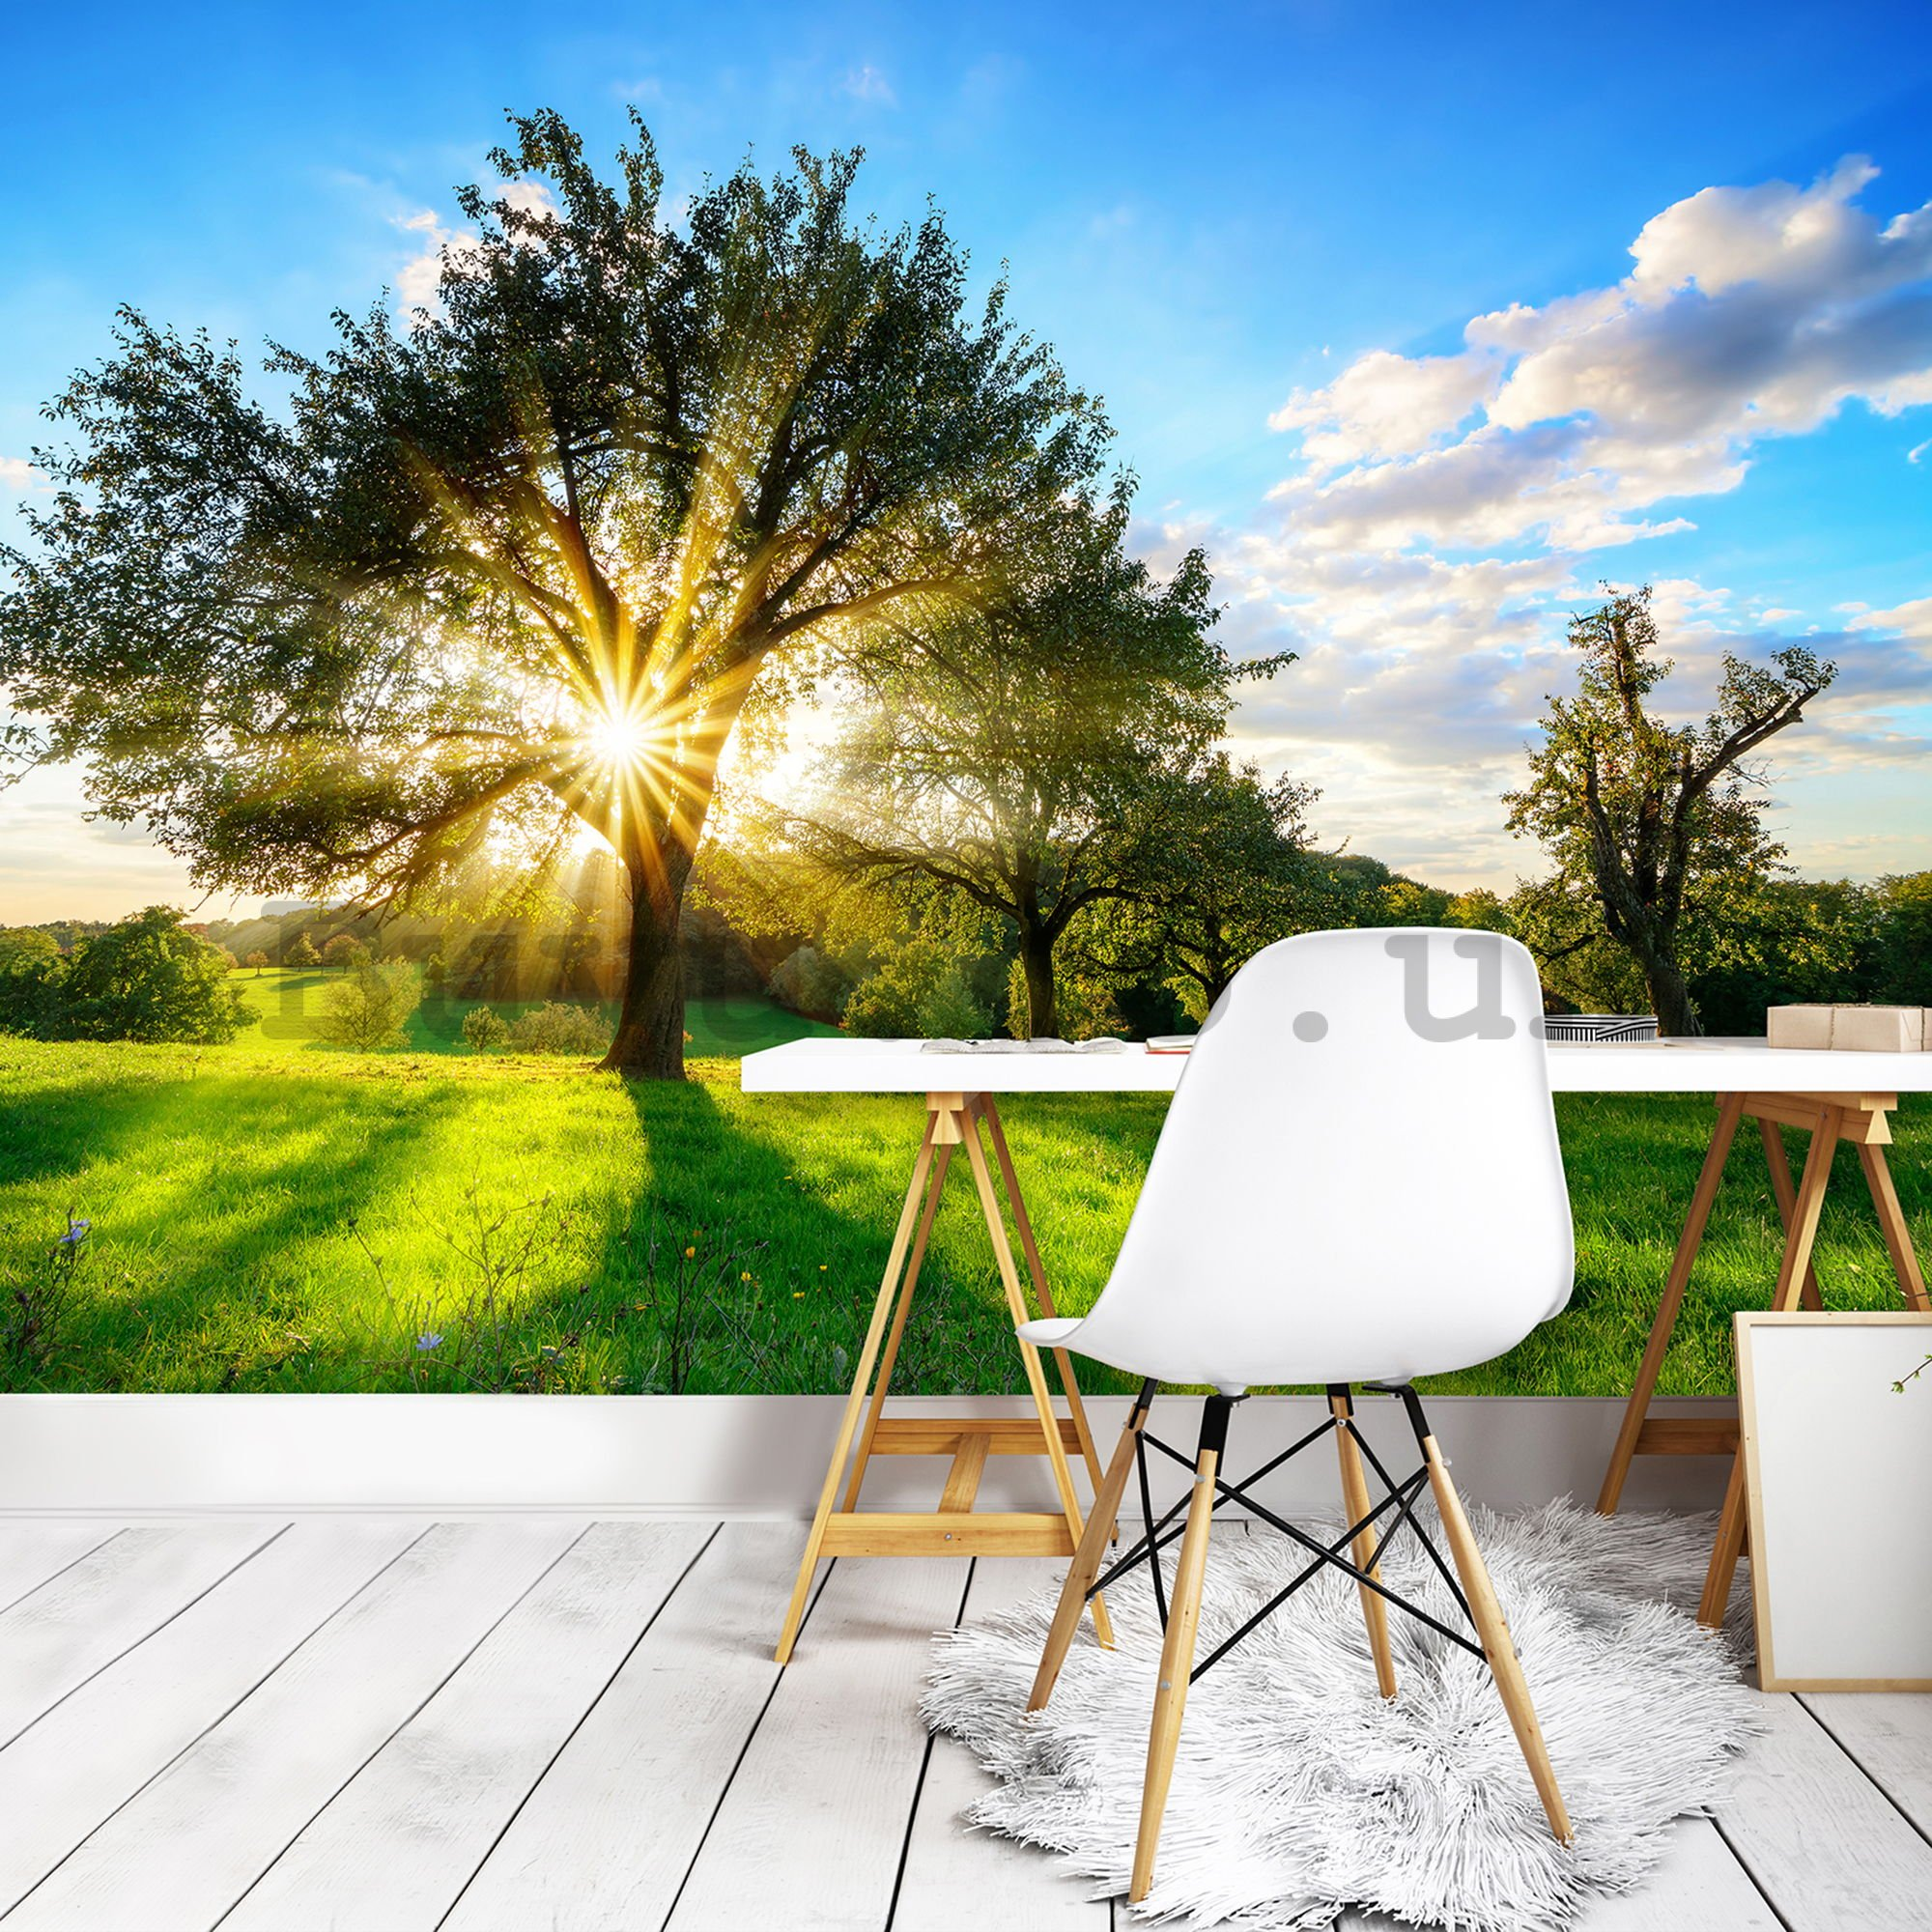 Wall mural vlies: Sun behind the tree - 254x368 cm